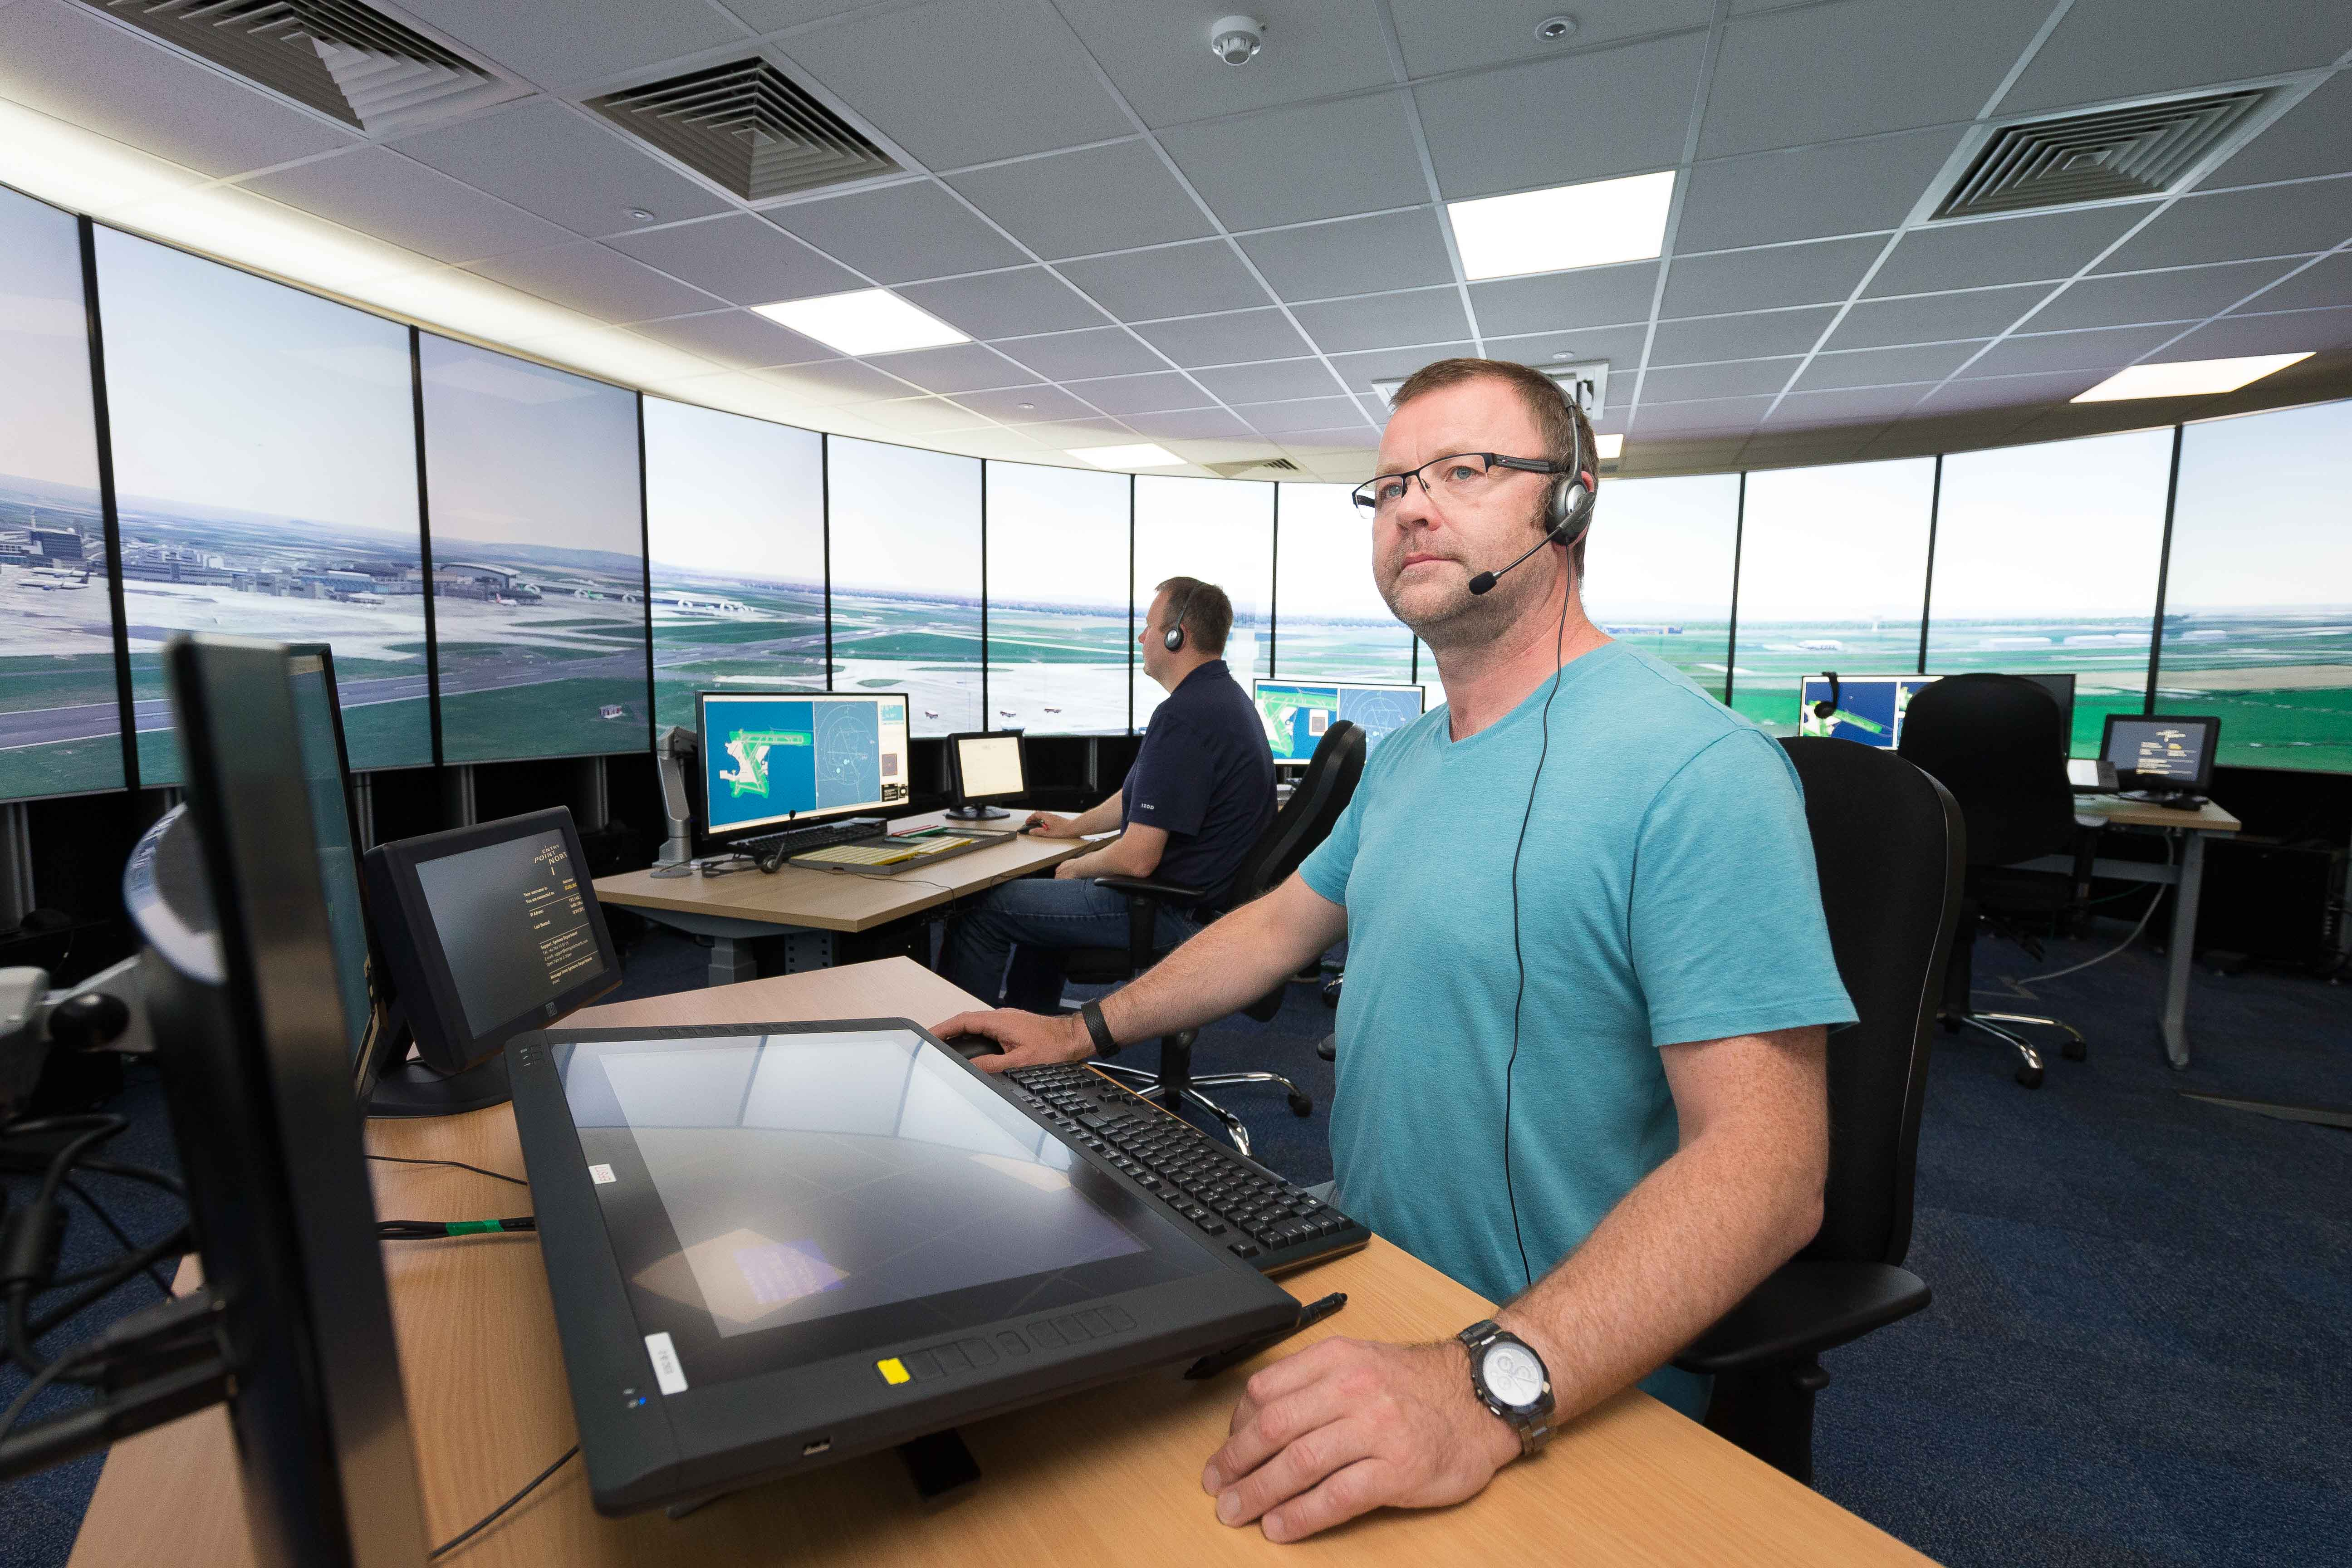 EPN Entry Point North BEST 3D Tower 360 degree simulator at Dublin Airport